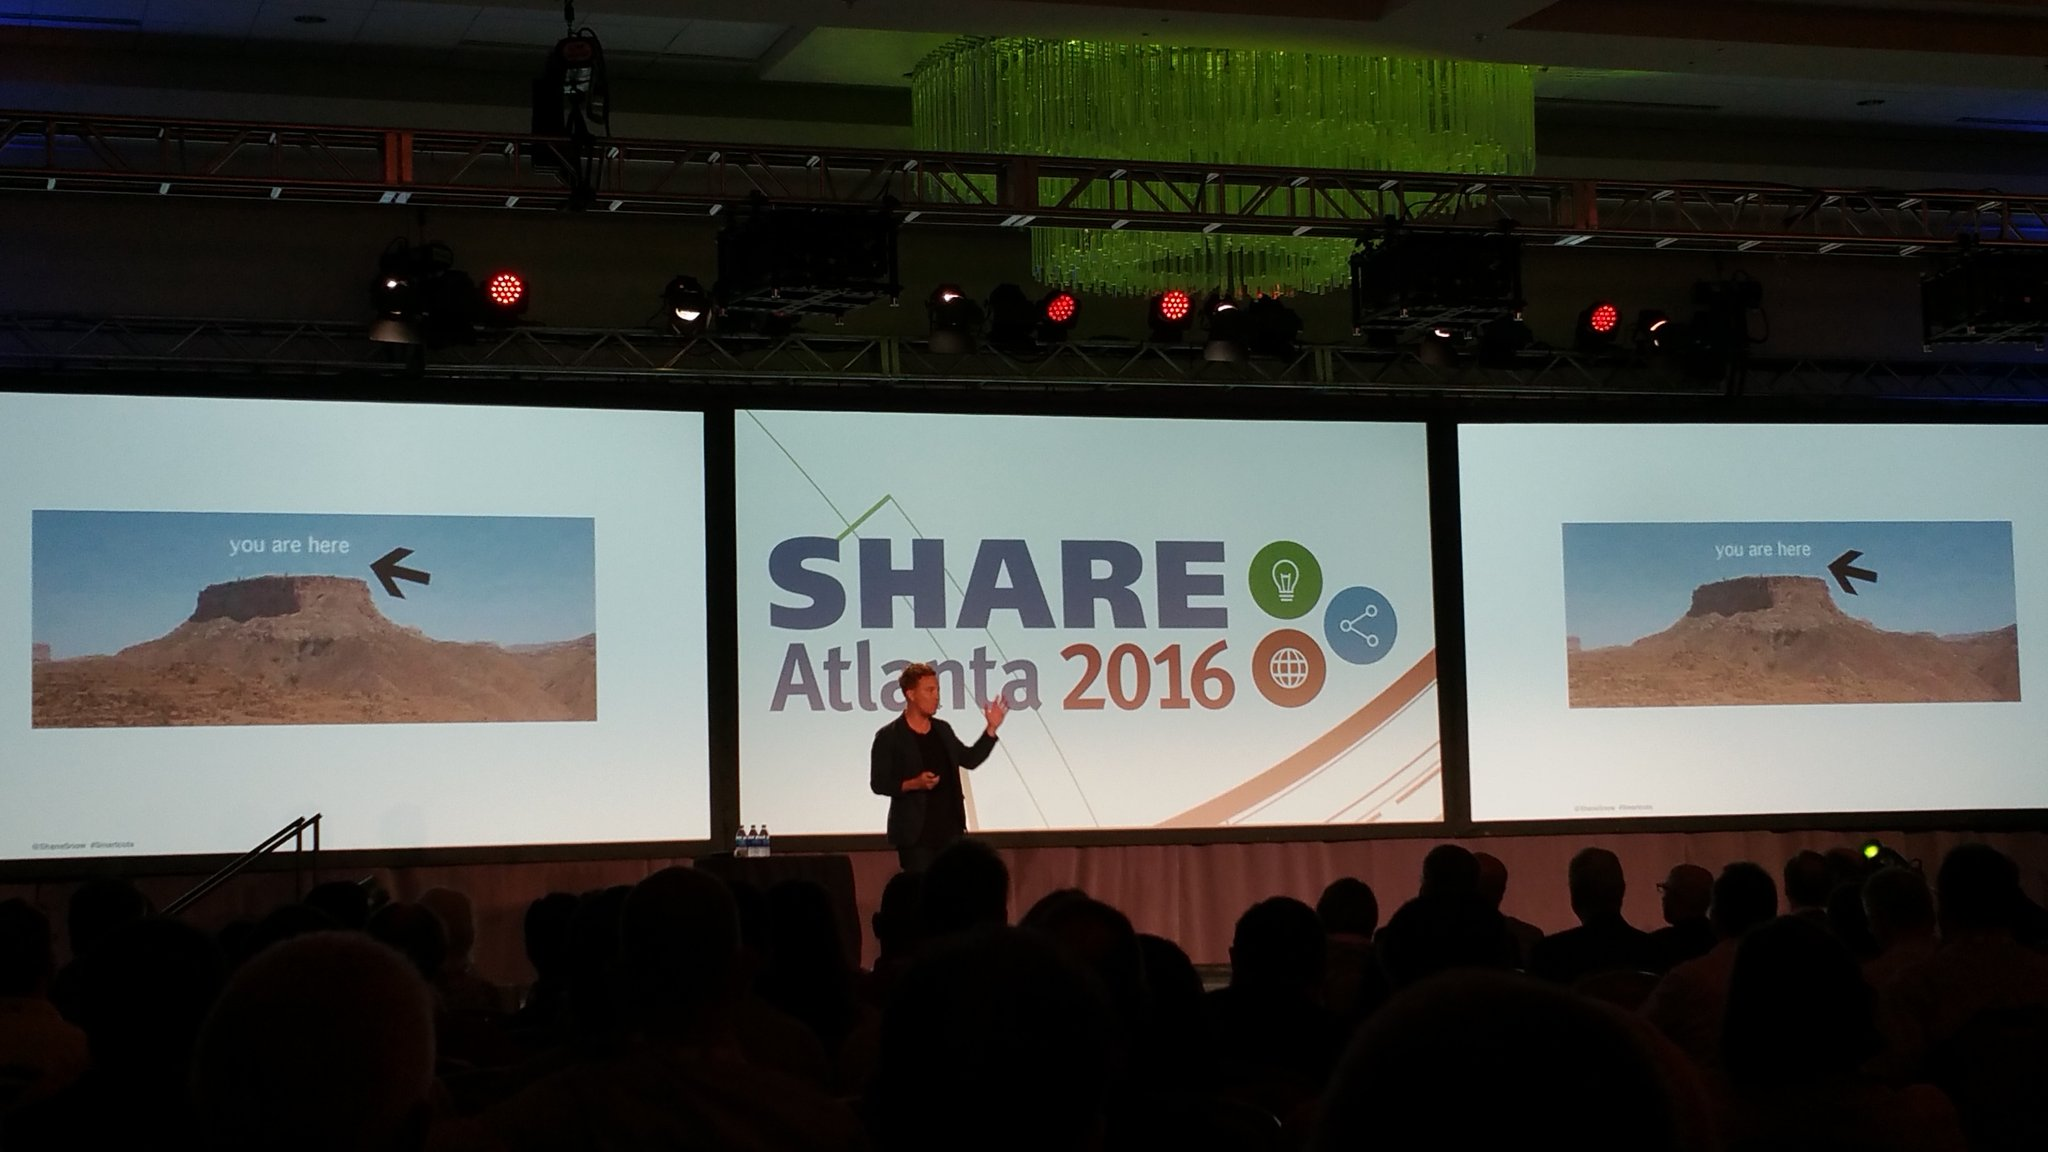 #SHAREatl keynote Shane Snow have to get his book https://t.co/zLWQ5hOLLq